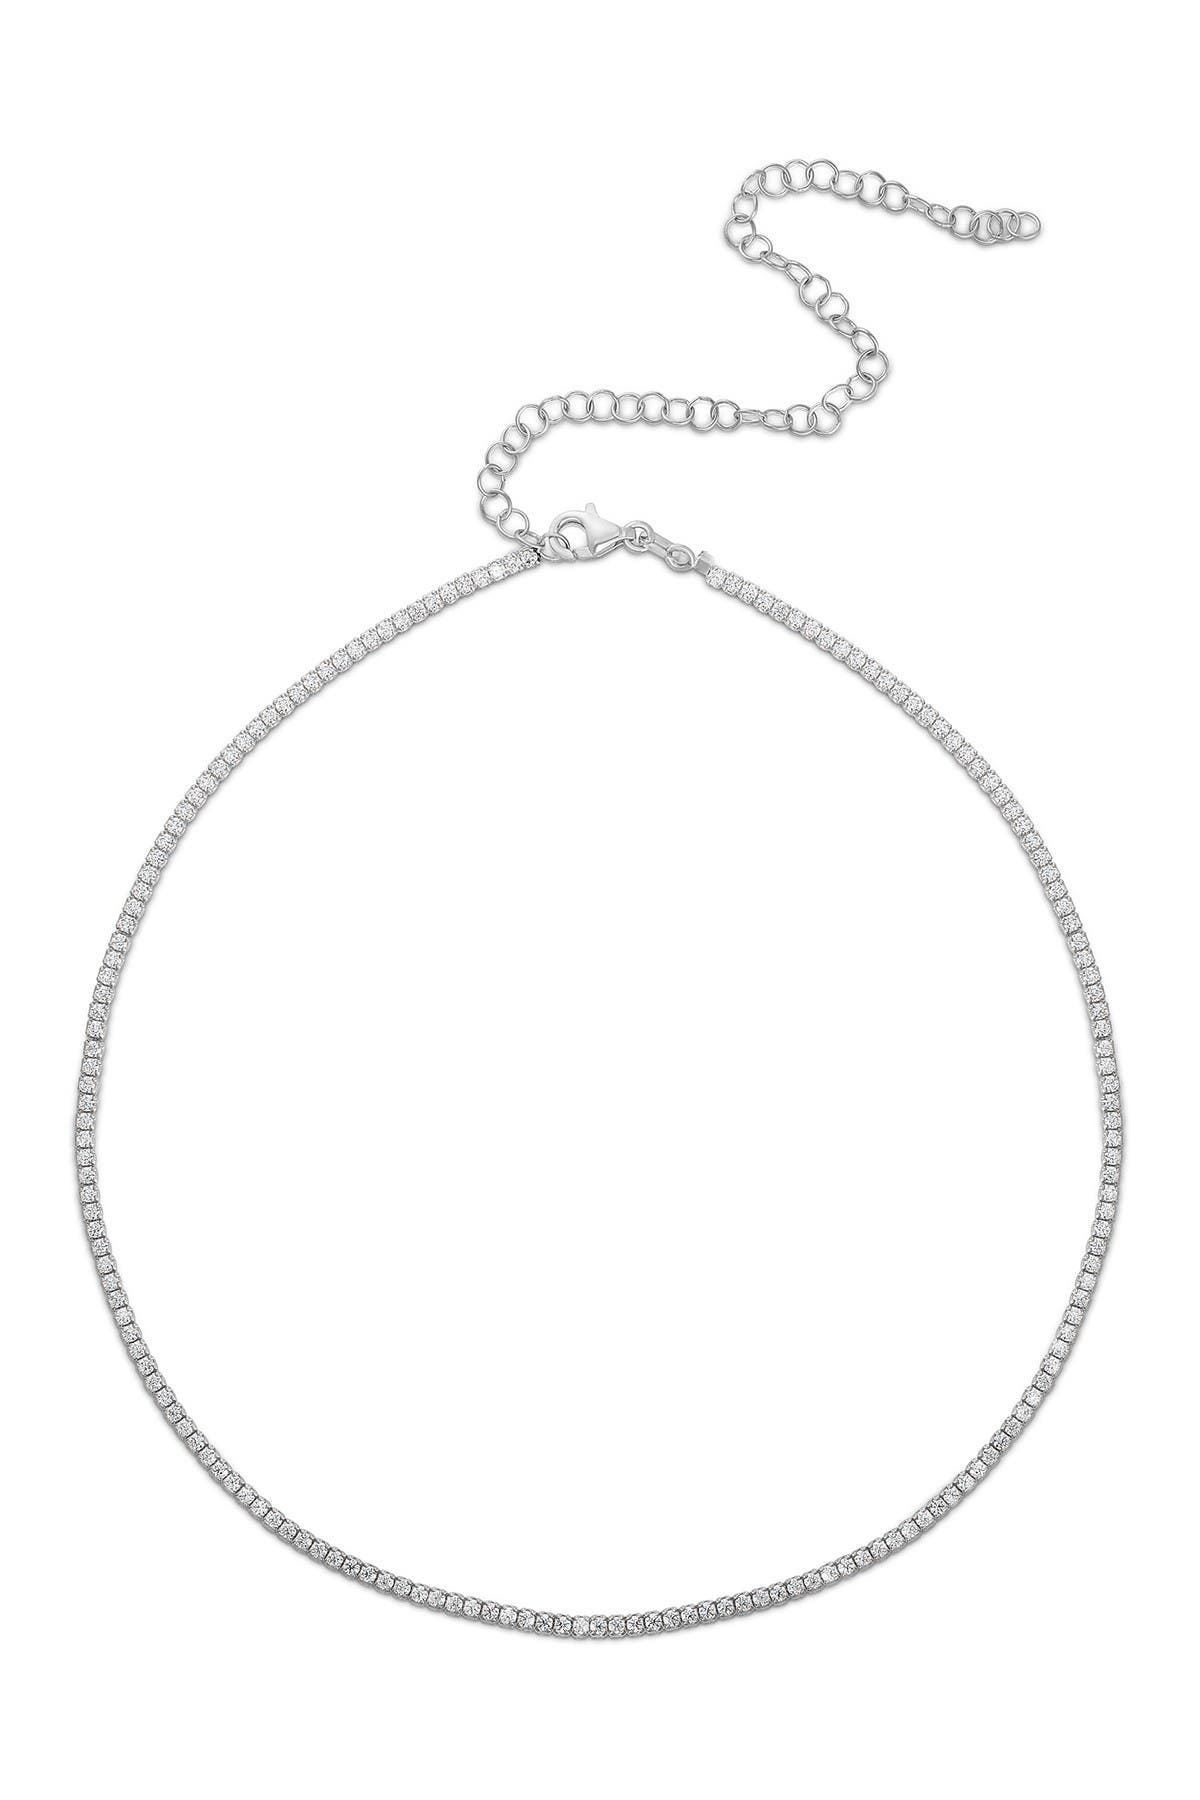 Sphera Milano 18K White Gold Plated Sterling Silver CZ Tennis Choker Necklace at Nordstrom Rack